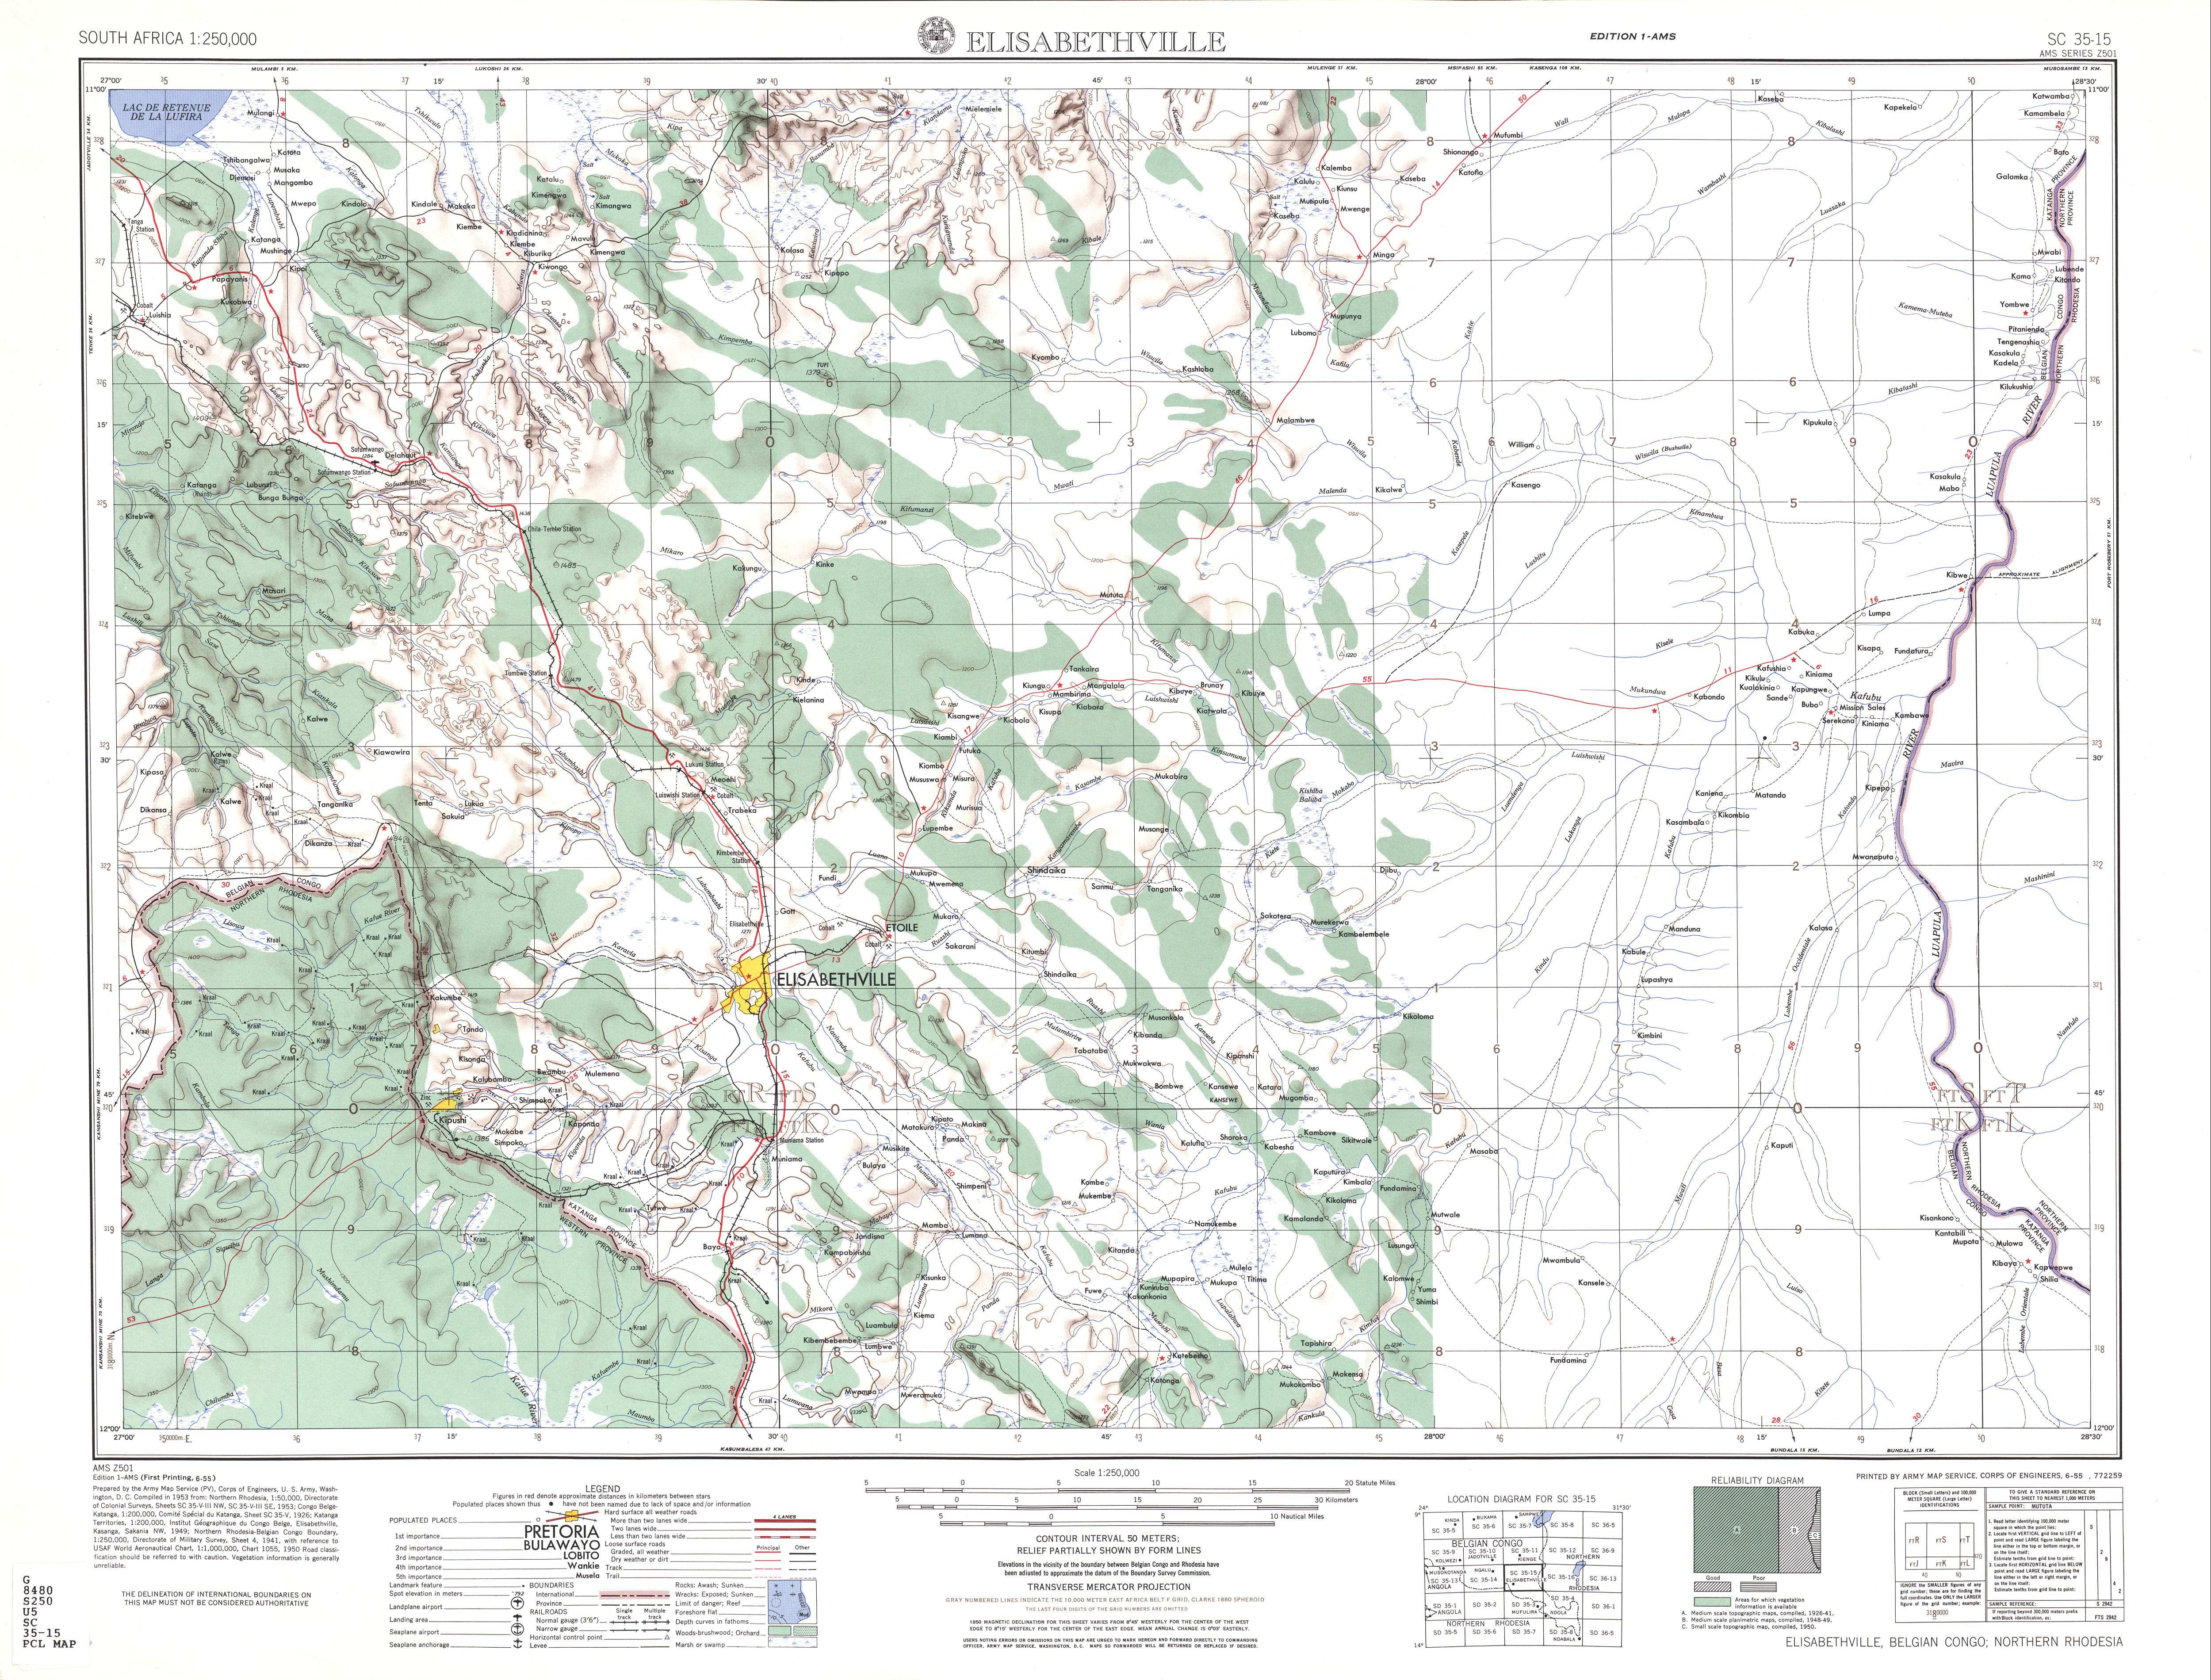 Elisabethville Topographic Map Sheet, Southern Africa 1954